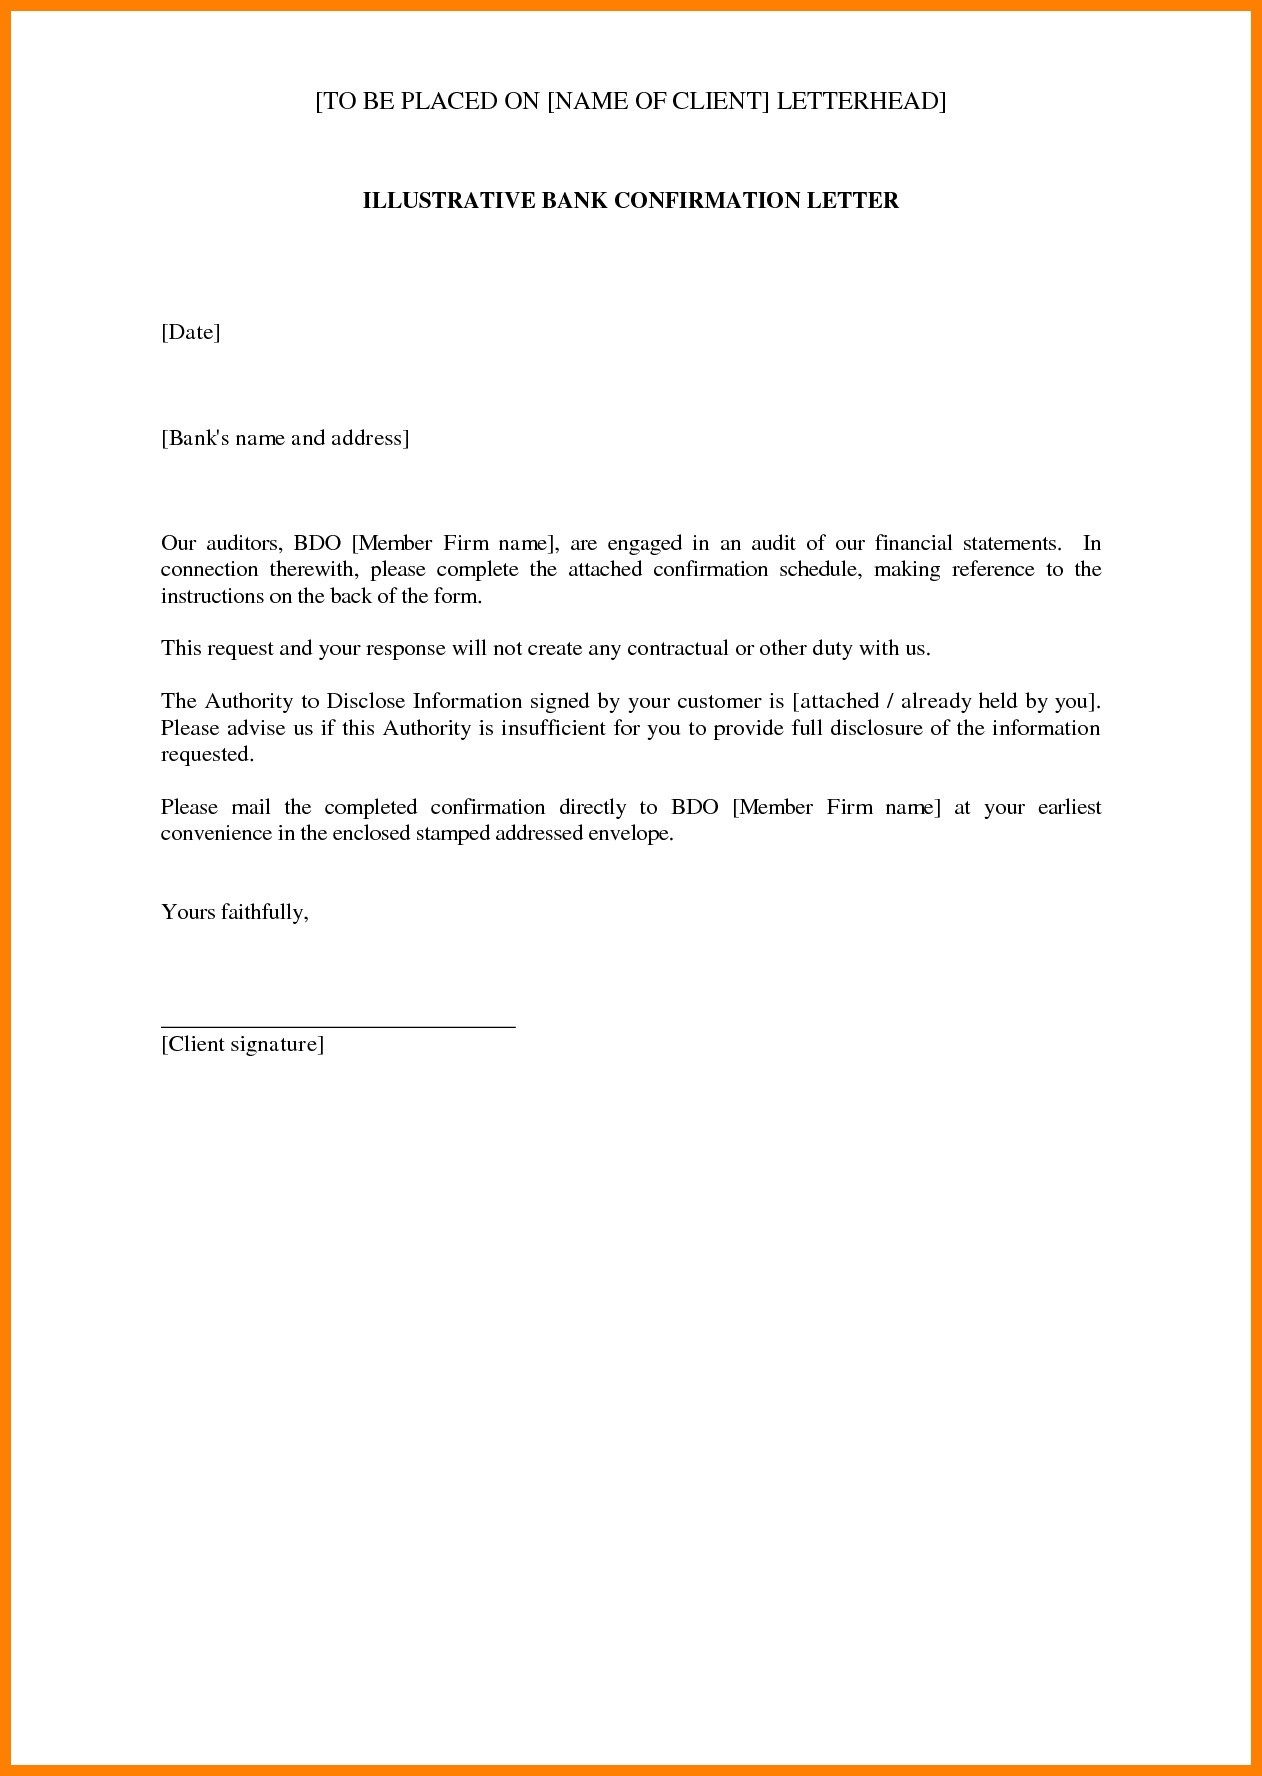 audit response letter template example-Audit Confirmation Letter Template Sample Confirmation New Sample Audit Letter In Bank New Bank 9-d